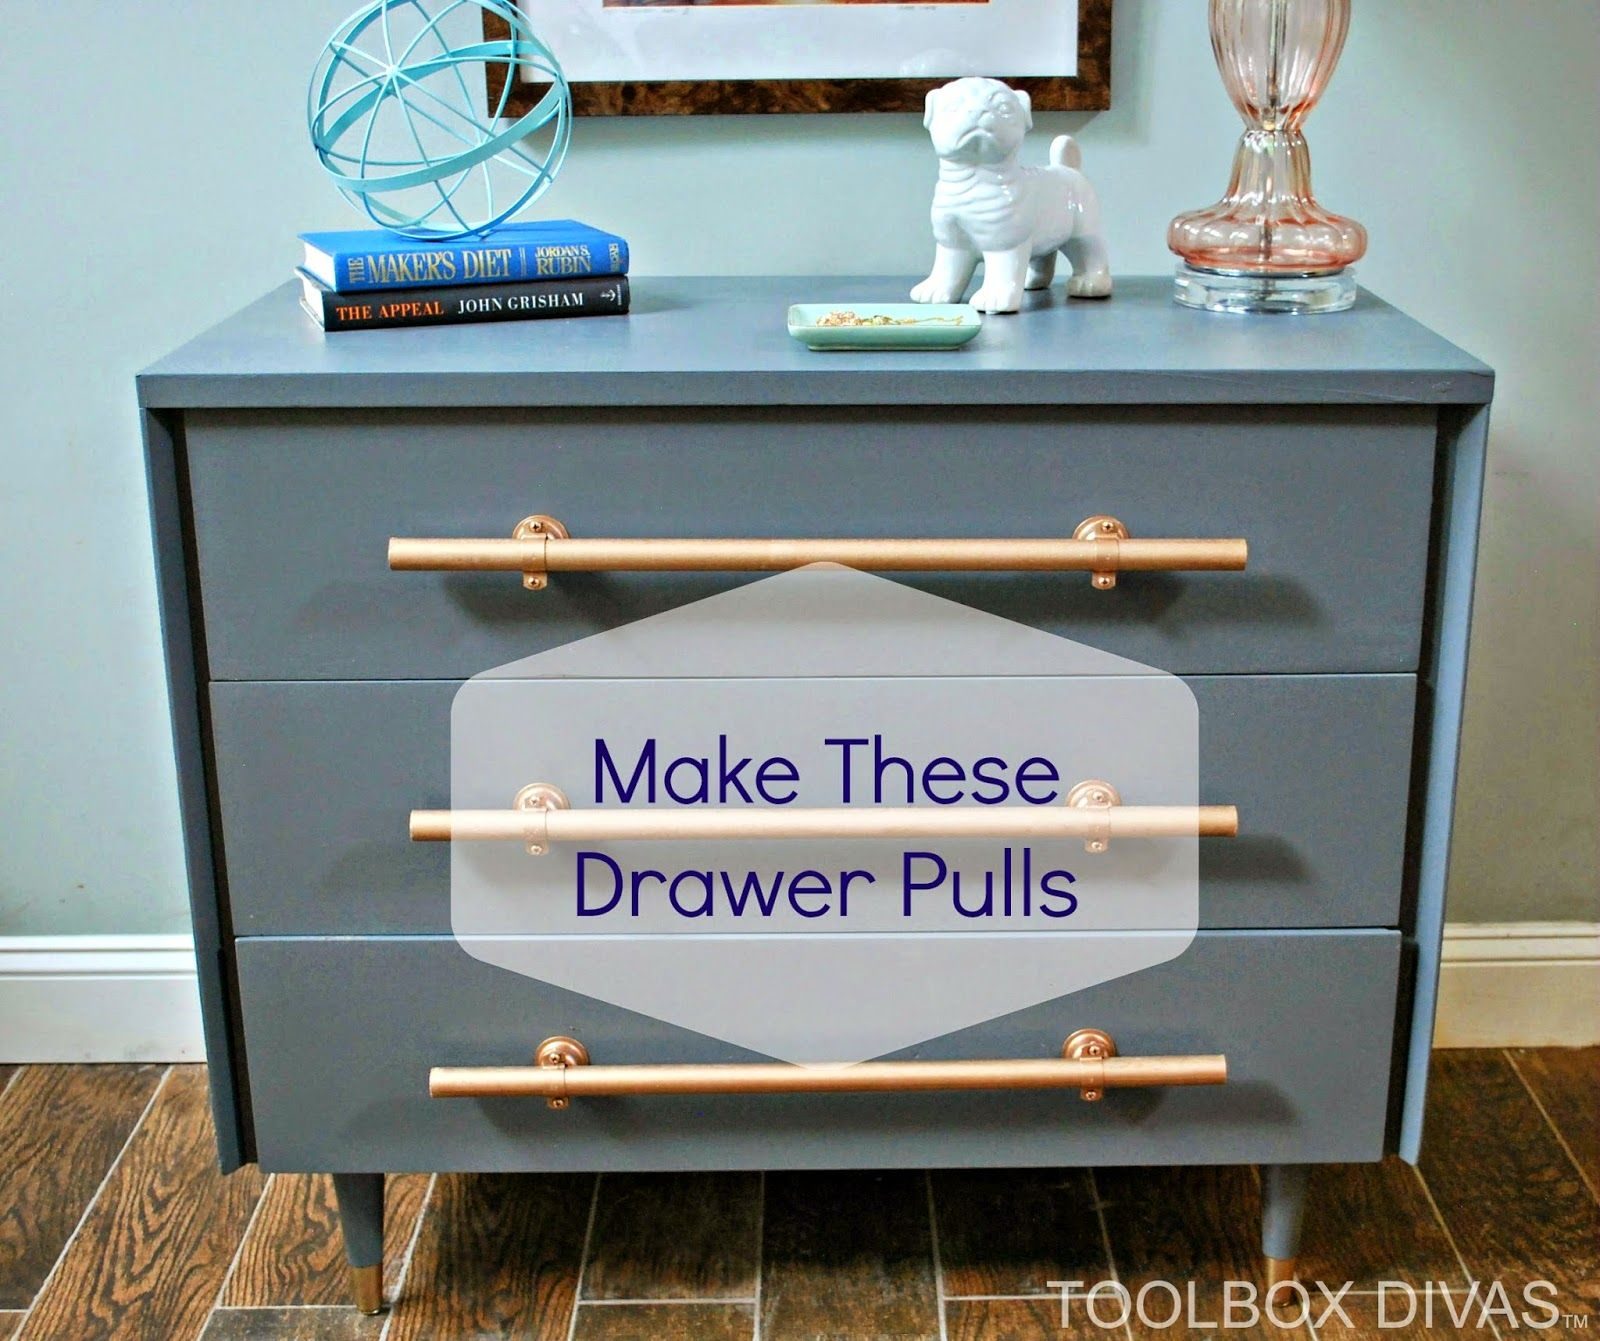 How To Make Drawer Pulls Diy Furniture Handles Drawer Pulls Diy How To Make Drawers